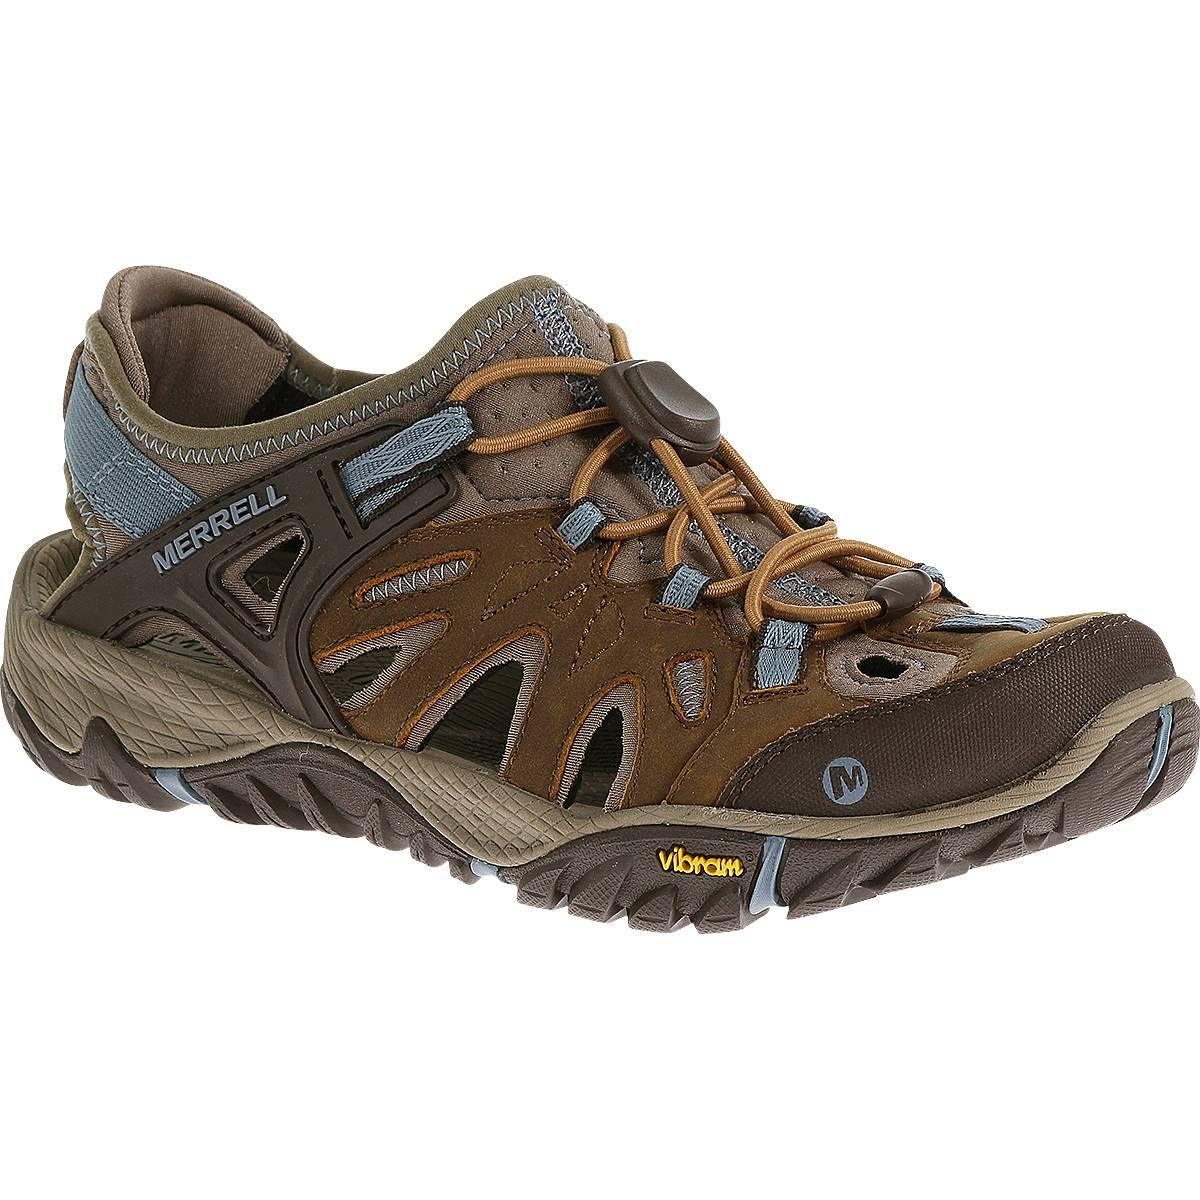 Merrell All Out Blaze Sieve Water Shoes Women's